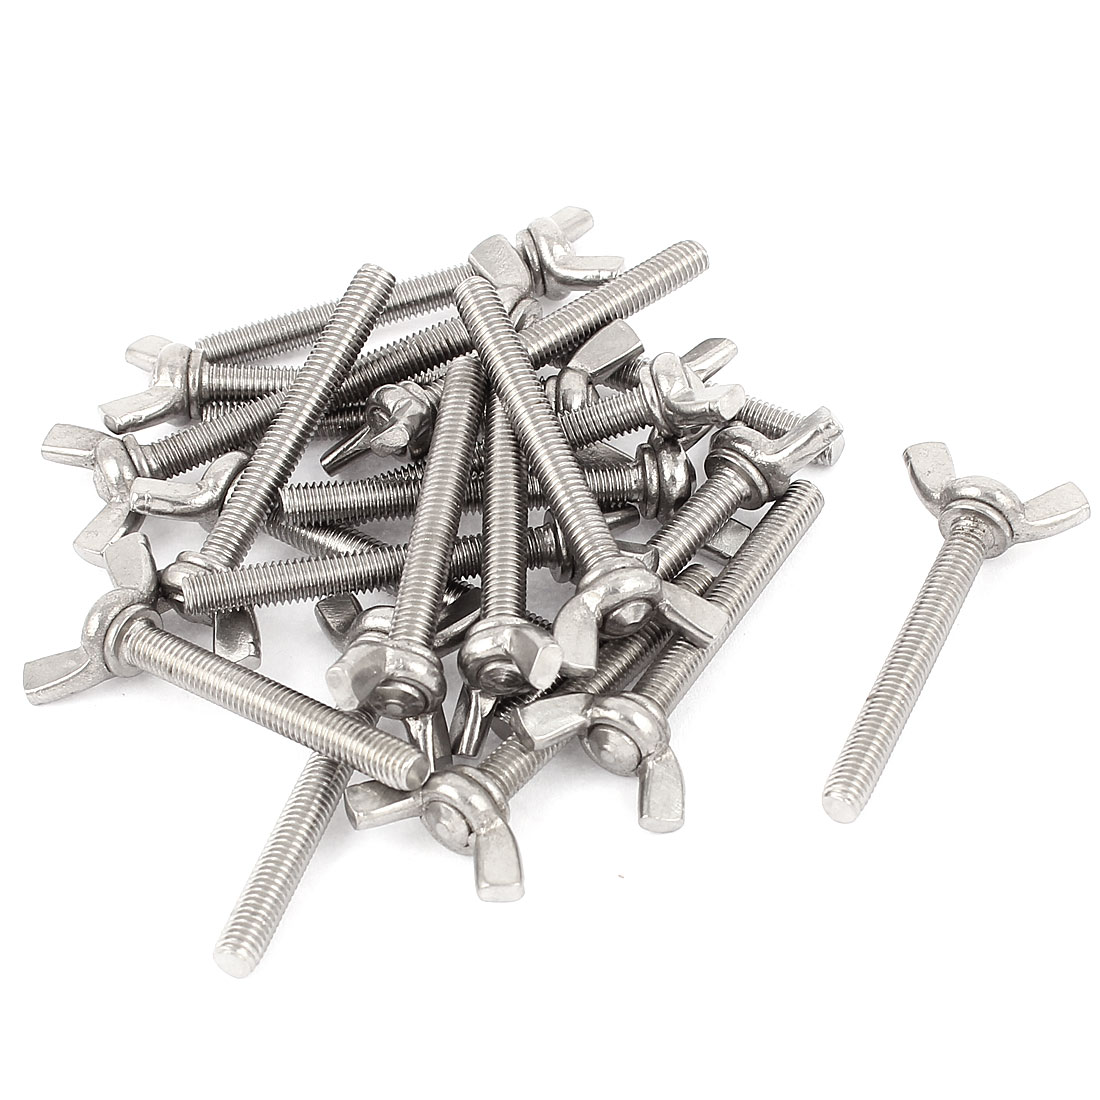 M5x40mm Thread Stainless Steel Wing Bolt Butterfly Screws Fastener 20Pcs